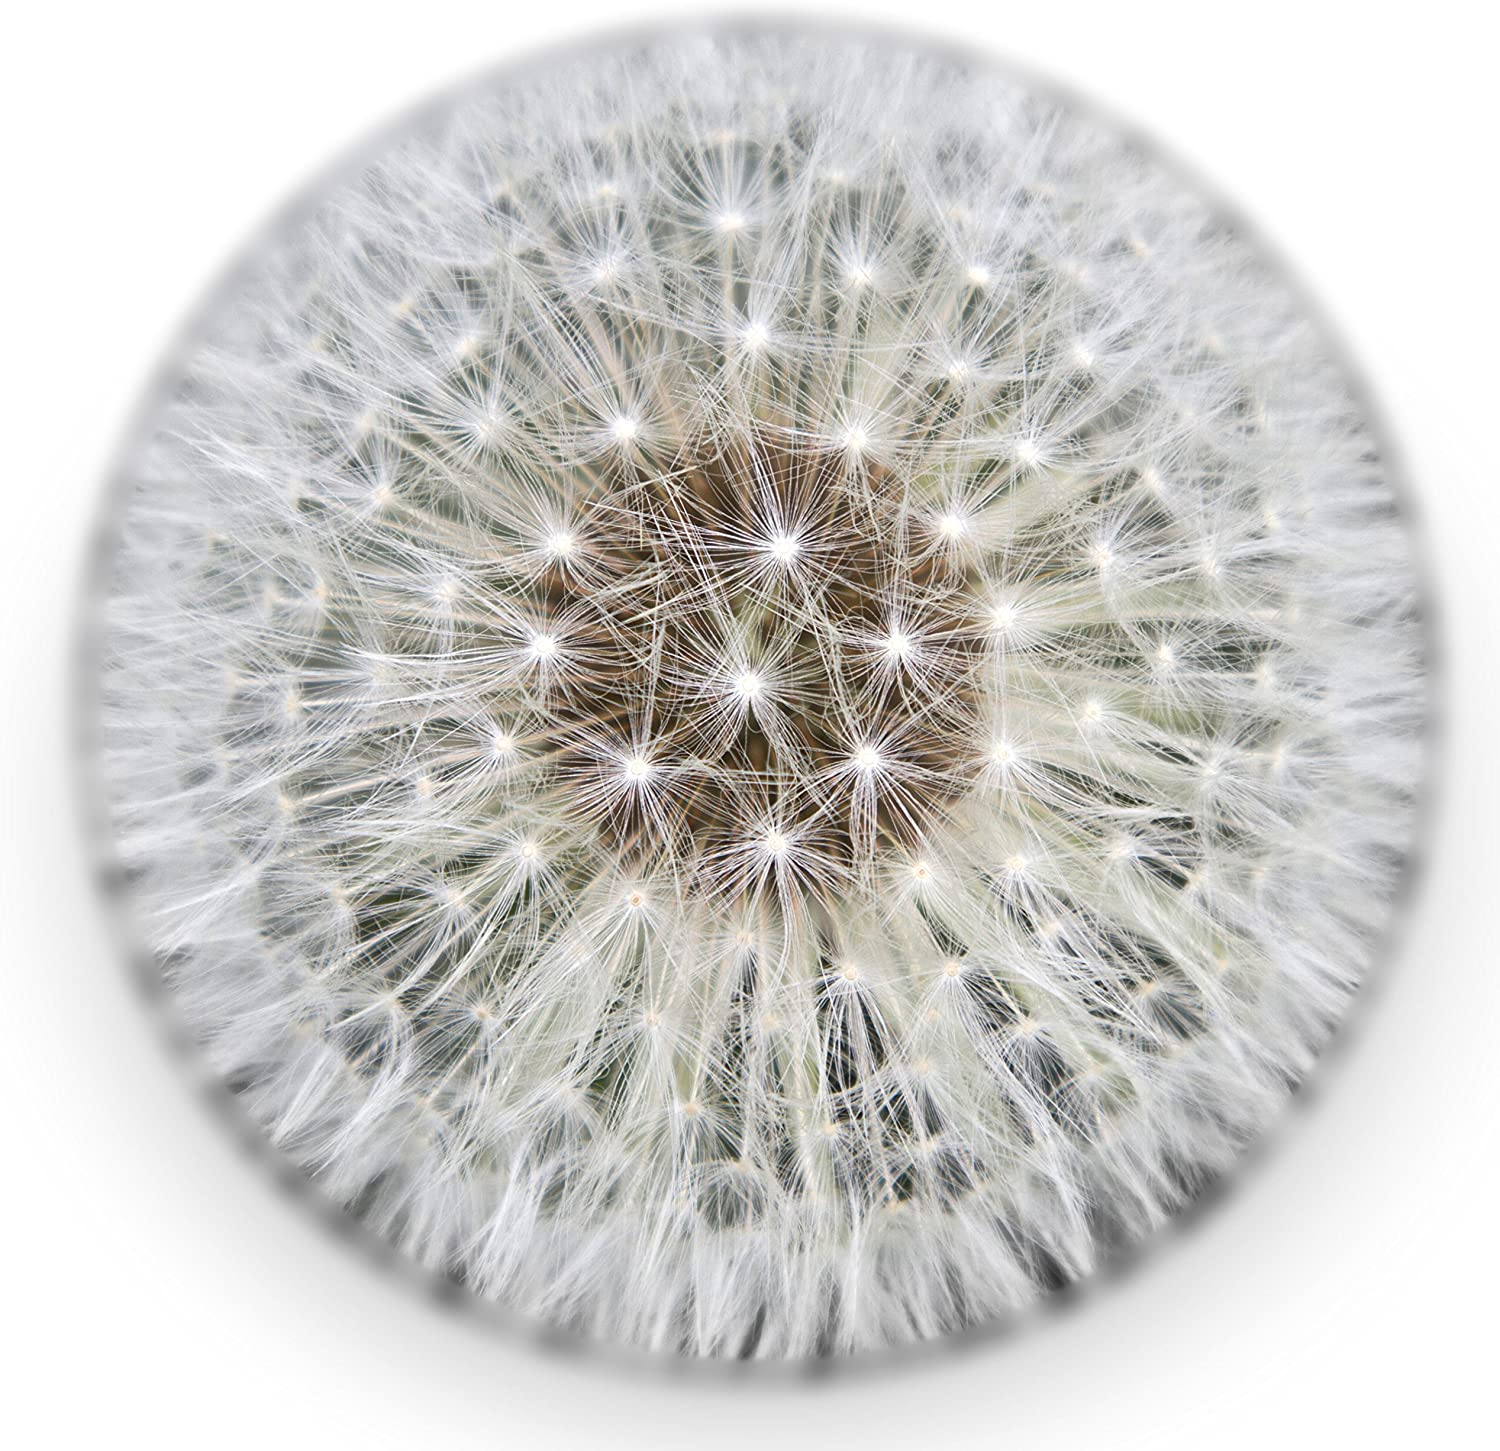 Real Dandelion Paperweight (X-Large) - Made from a Real Dandelion Seed Puff